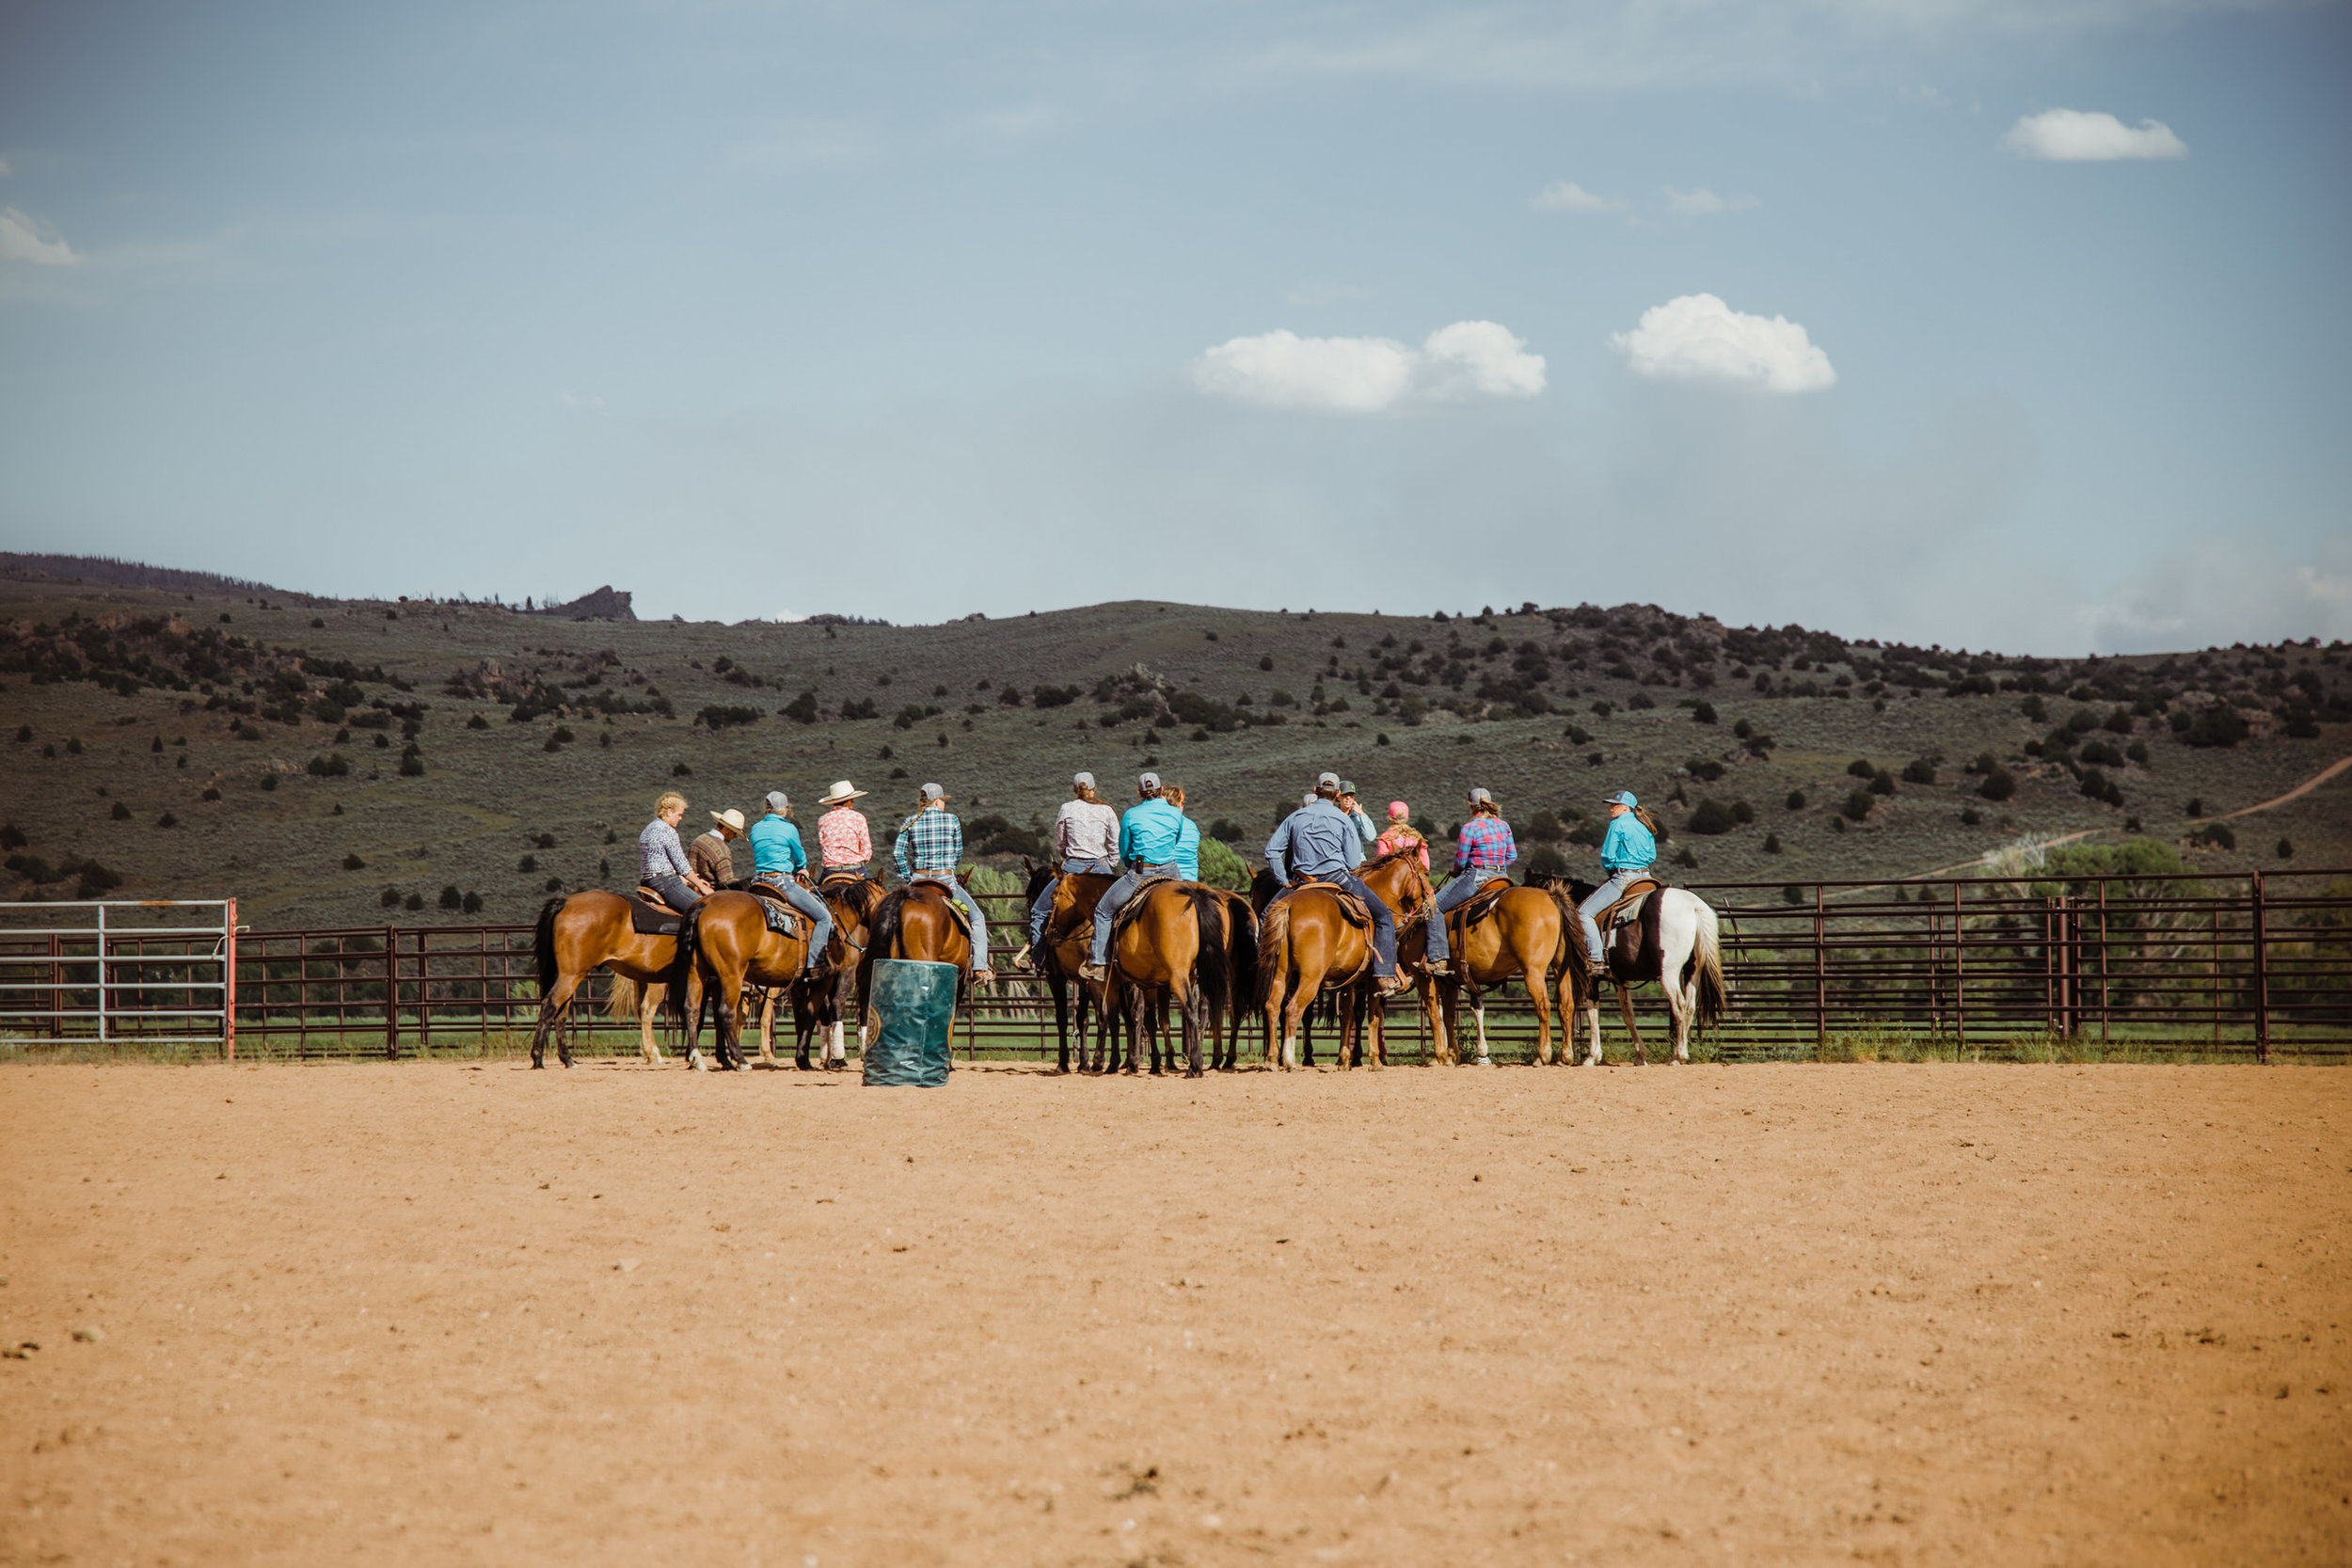 tonya-merke-photography-adventure-events-BrushCreekRanch-9.jpg